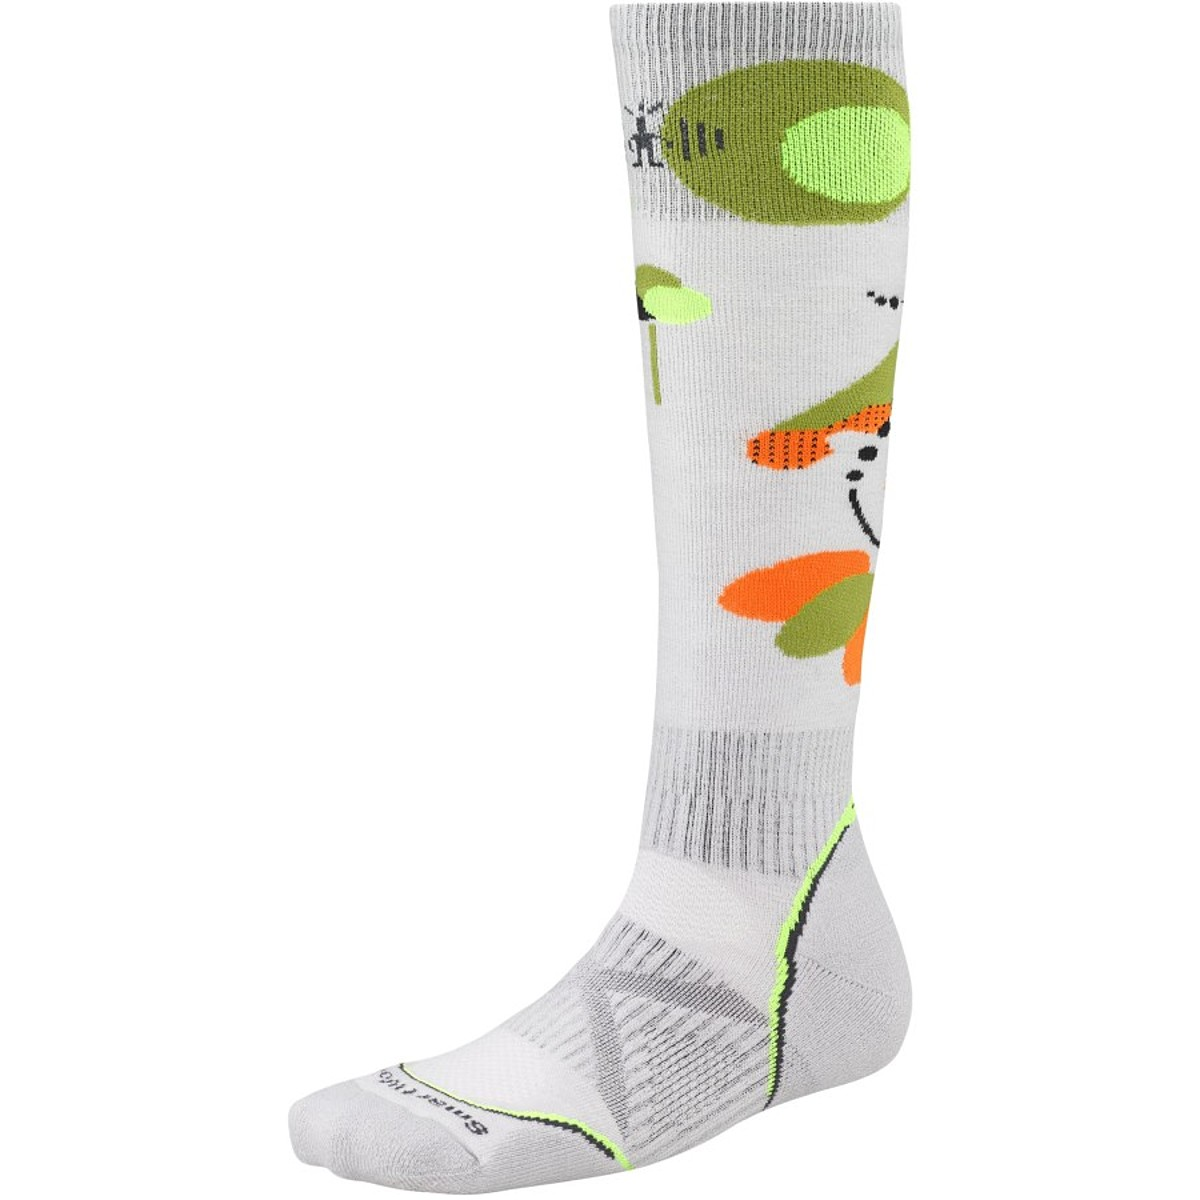 Smartwool Athlete Artist Ski Sock